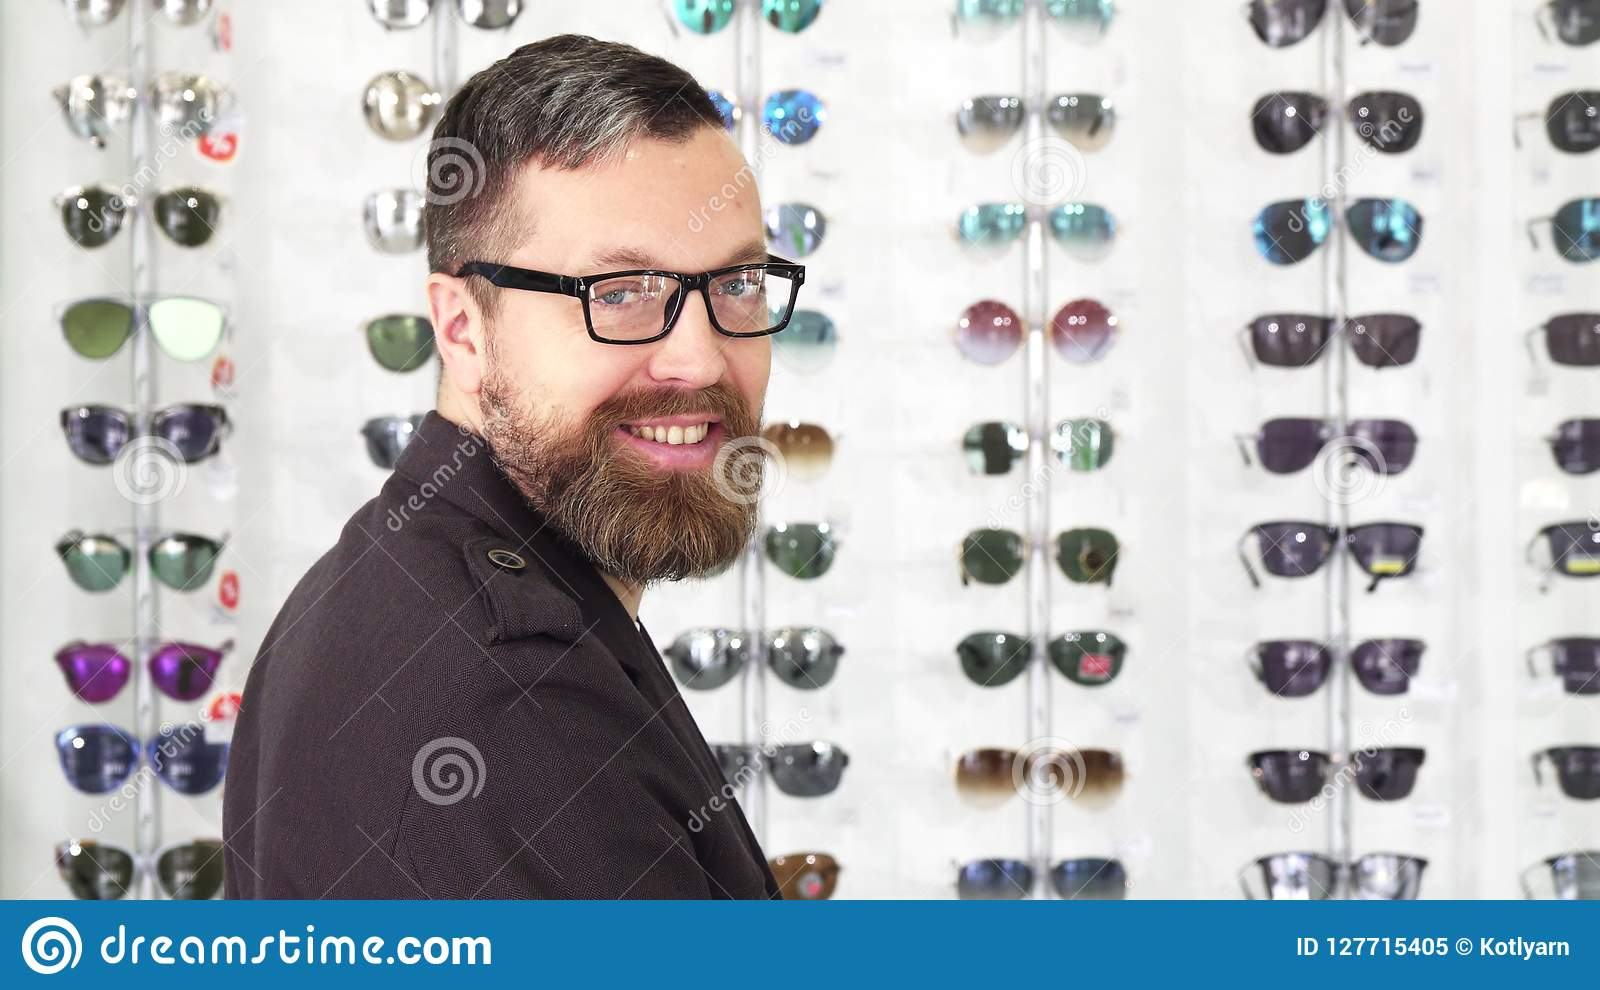 ef98211b72e6 Rear view shot of a bearded mature man examining sunglasses for sale on the  display at the opticians store smiling to the camera over his shoulder ...